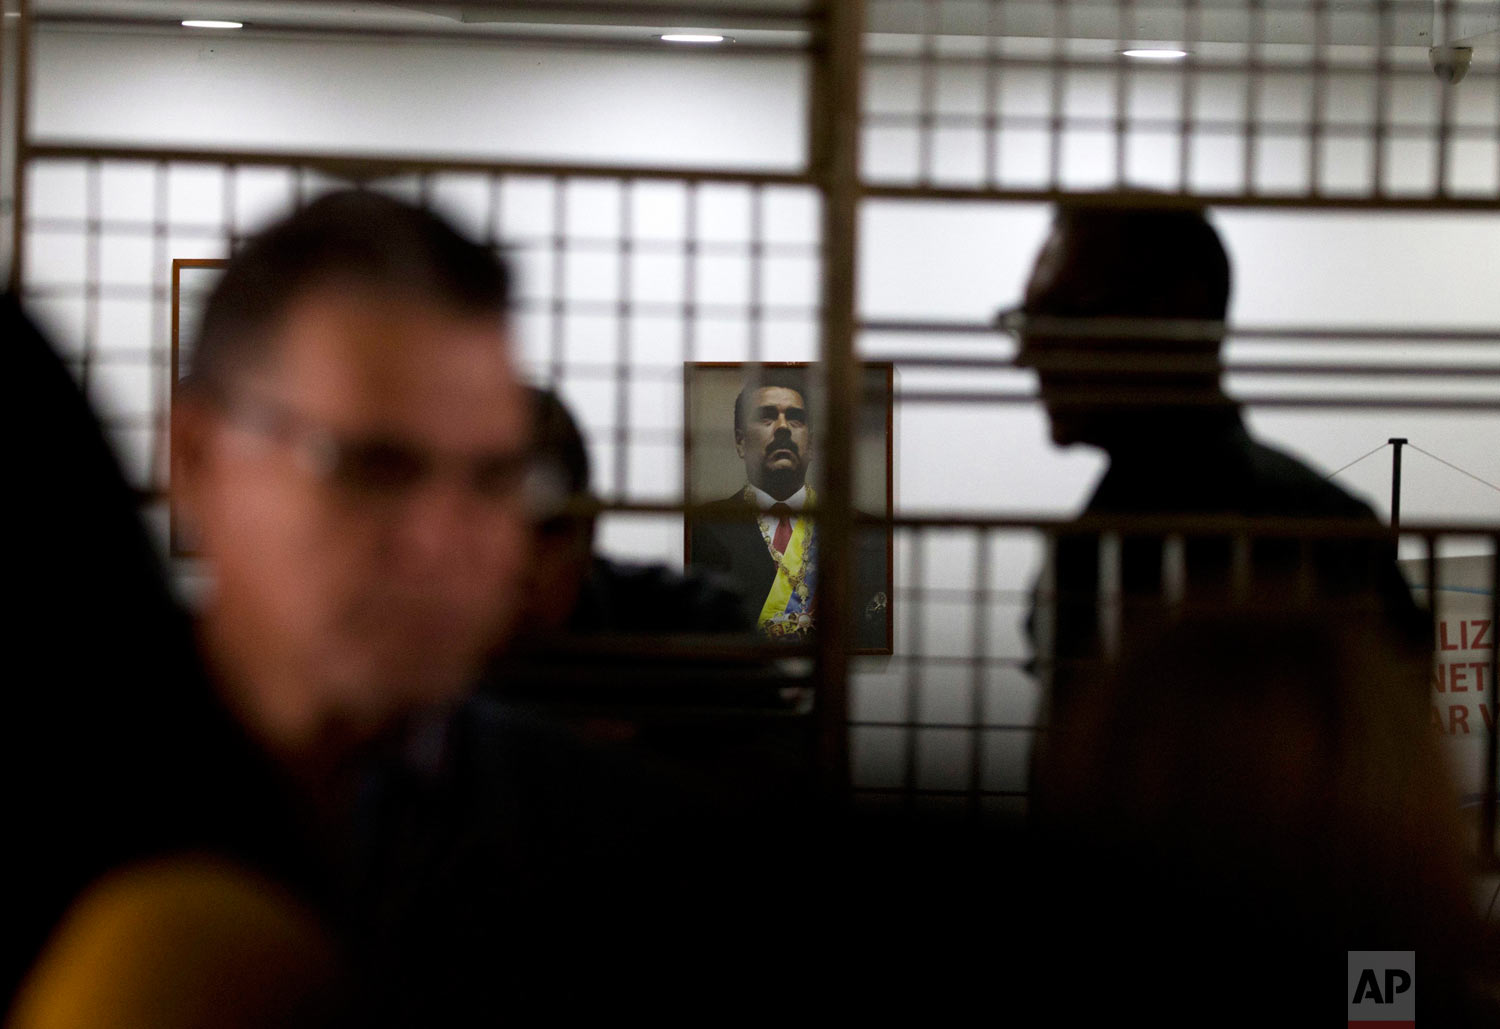 An image of Venezuela's President Nicolas Maduro hangs above the main desk at the Labor Ministry as workers demanding better wages protest outside the building, in Caracas, Venezuela, Oct. 5, 2018. (AP Photo/Fernando Llano)